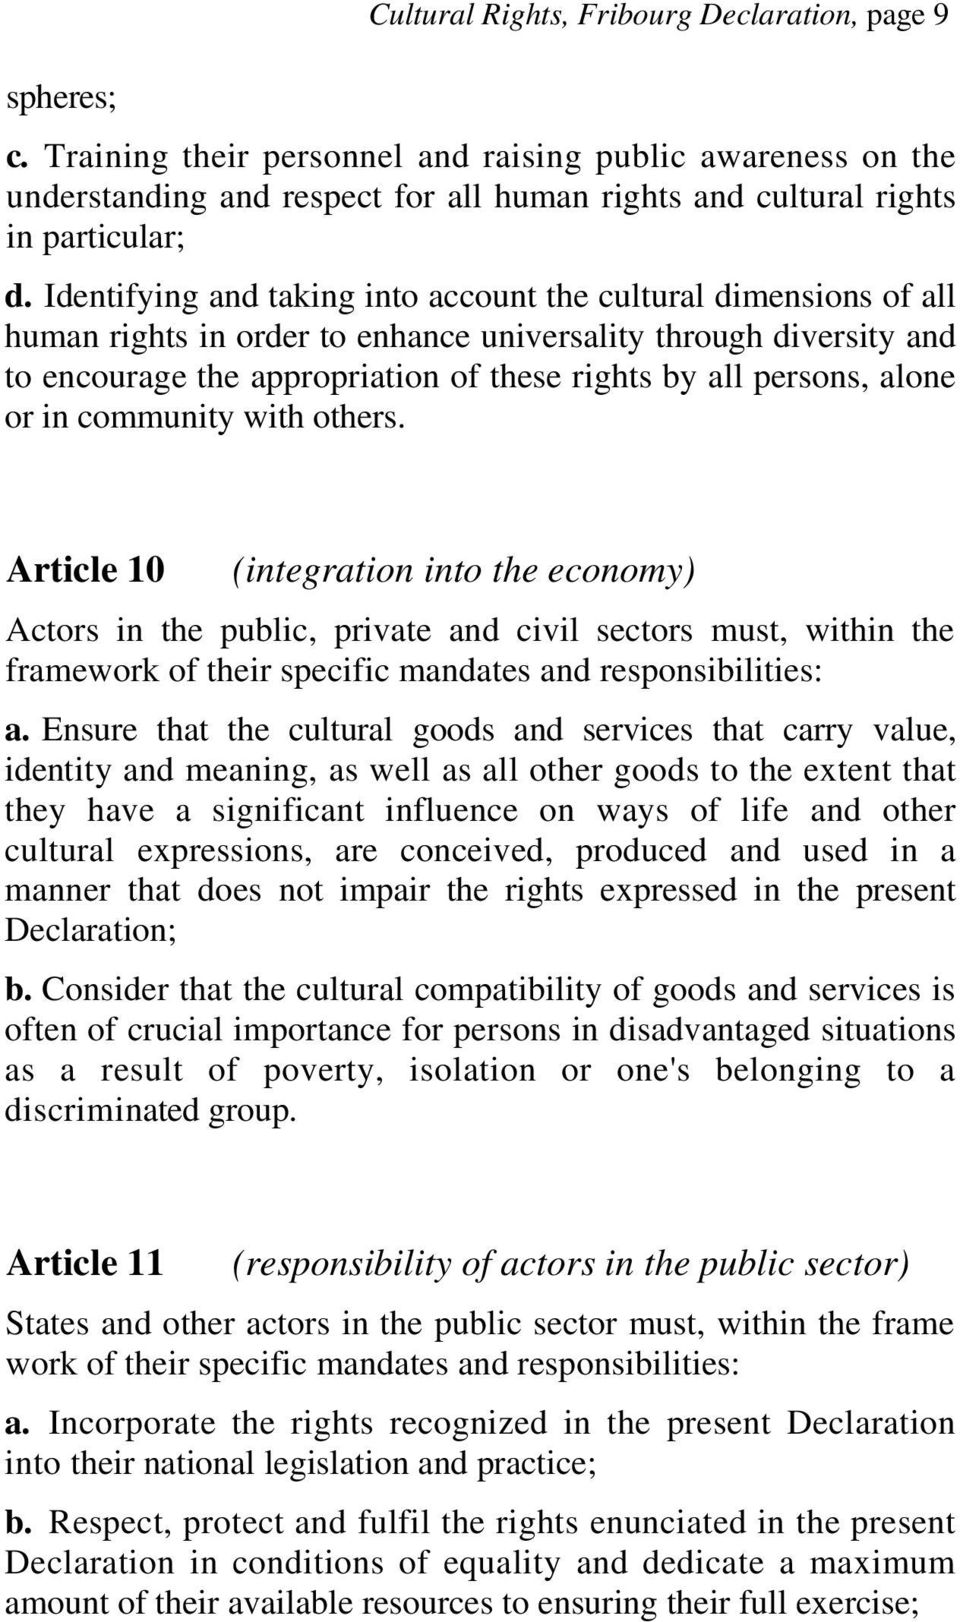 Identifying and taking into account the cultural dimensions of all human rights in order to enhance universality through diversity and to encourage the appropriation of these rights by all persons,